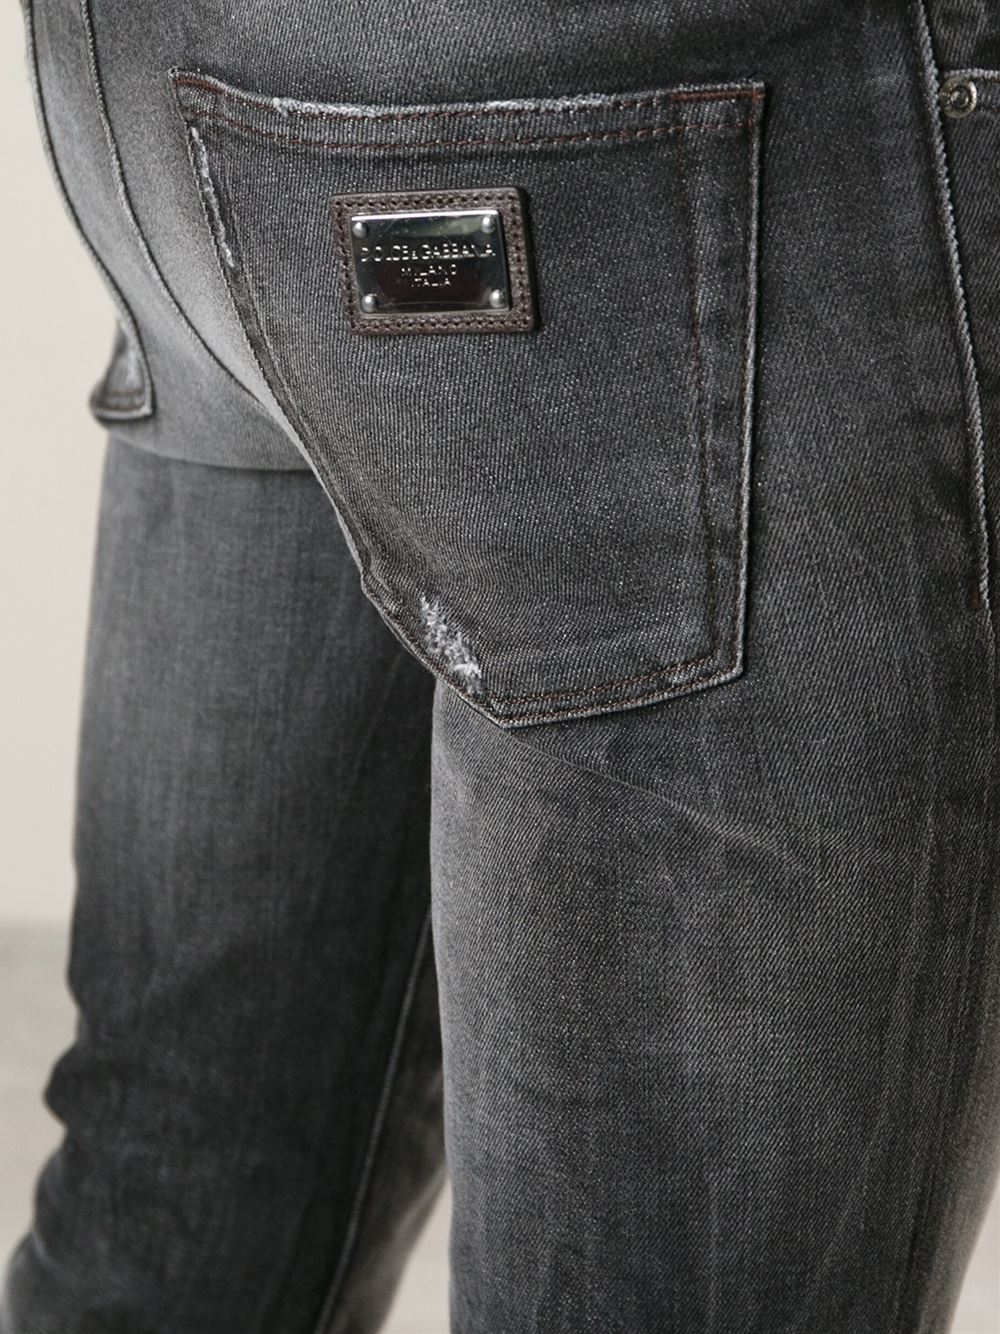 18a3913cfd Lyst - Dolce   Gabbana Distressed Skinny Jeans in Gray for Men